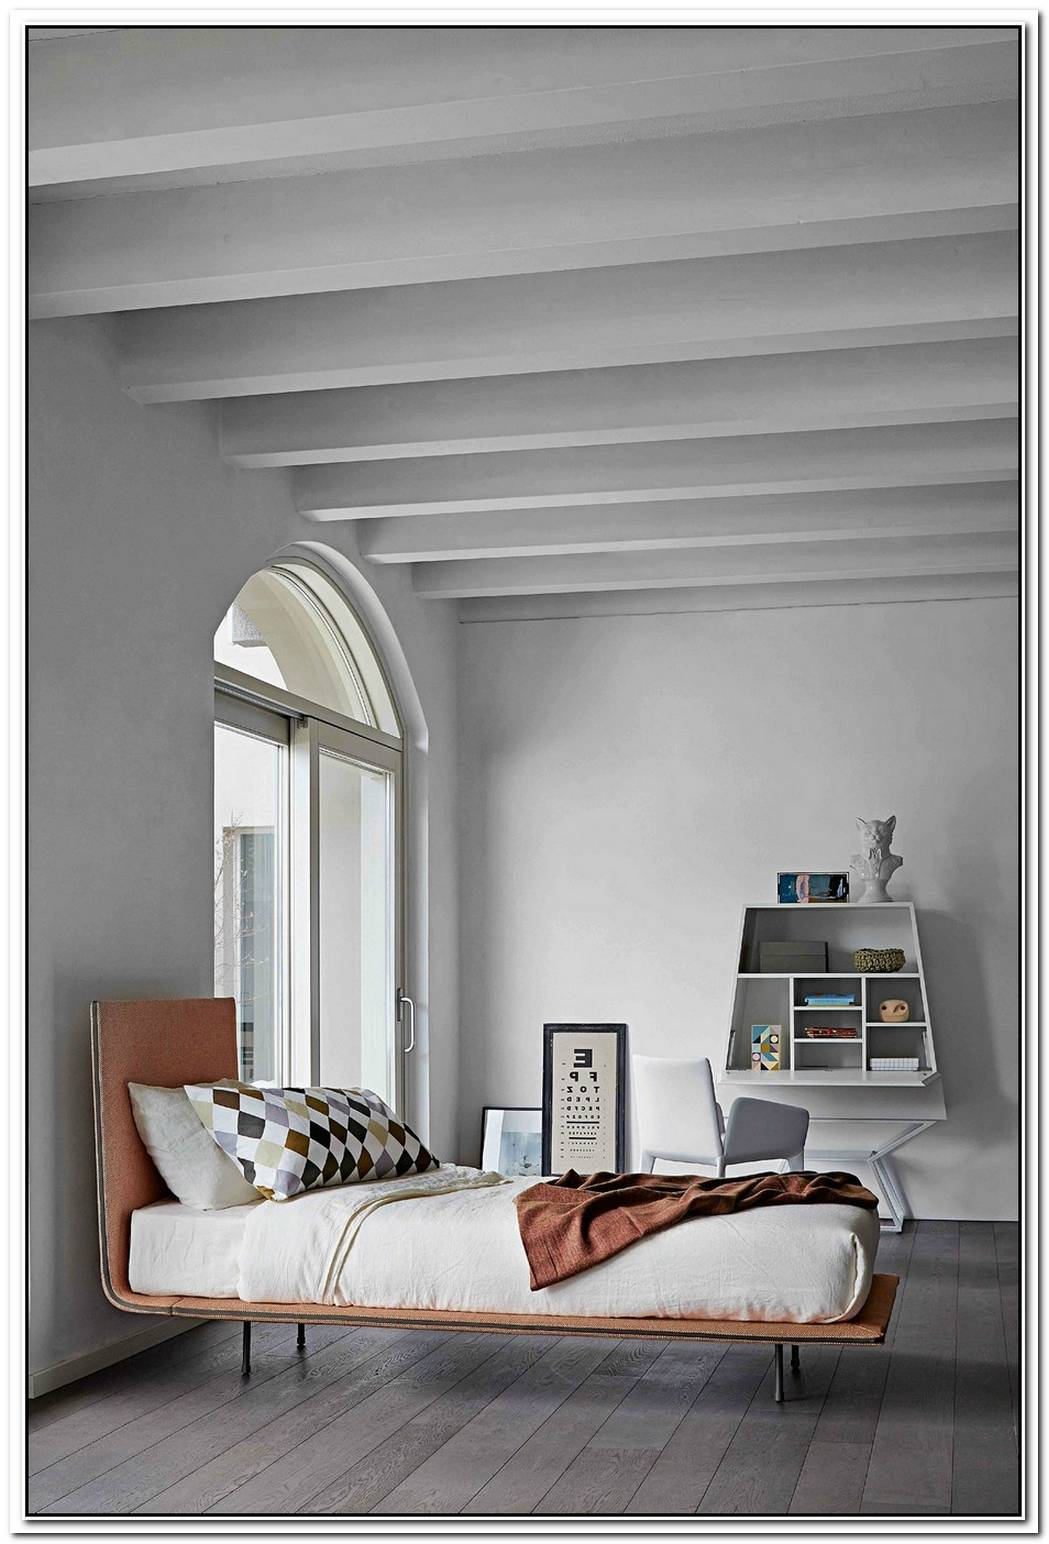 The Comfy Pad Bed By Guiseppe Viganò